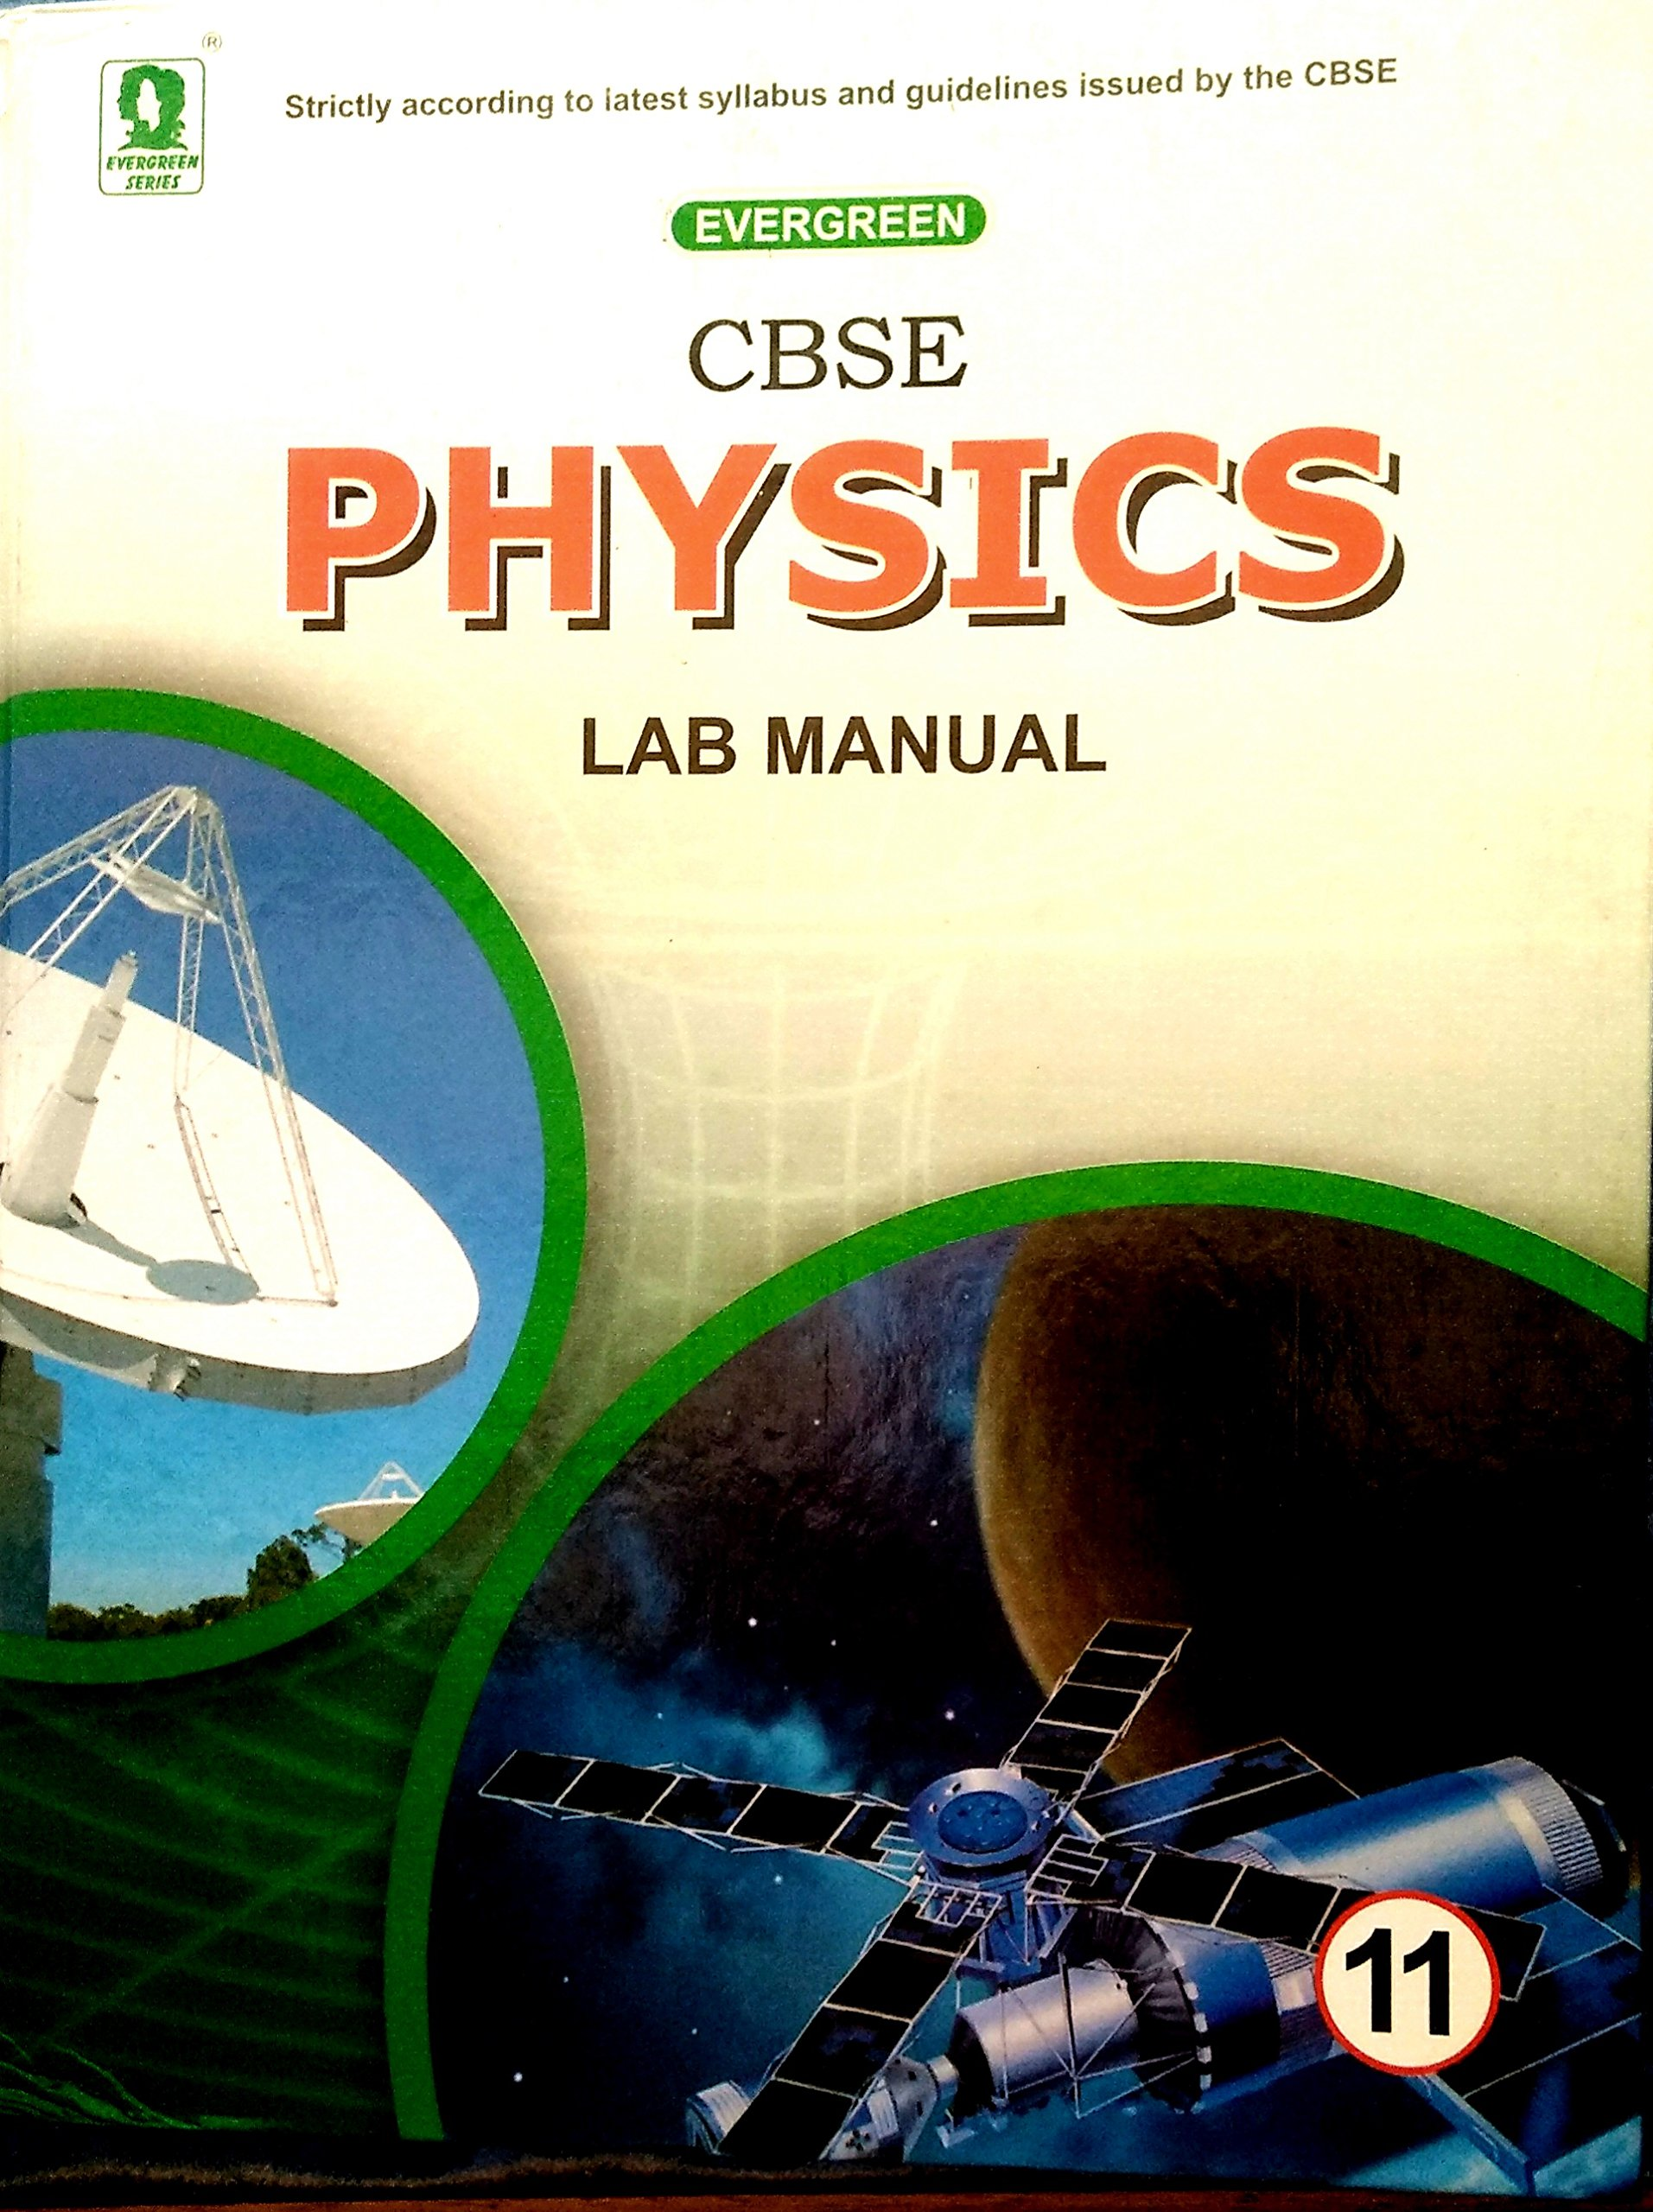 Buy evergreen physics lab manual for class11 Book Online at Low Prices in  India | evergreen physics lab manual for class11 Reviews & Ratings -  Amazon.in